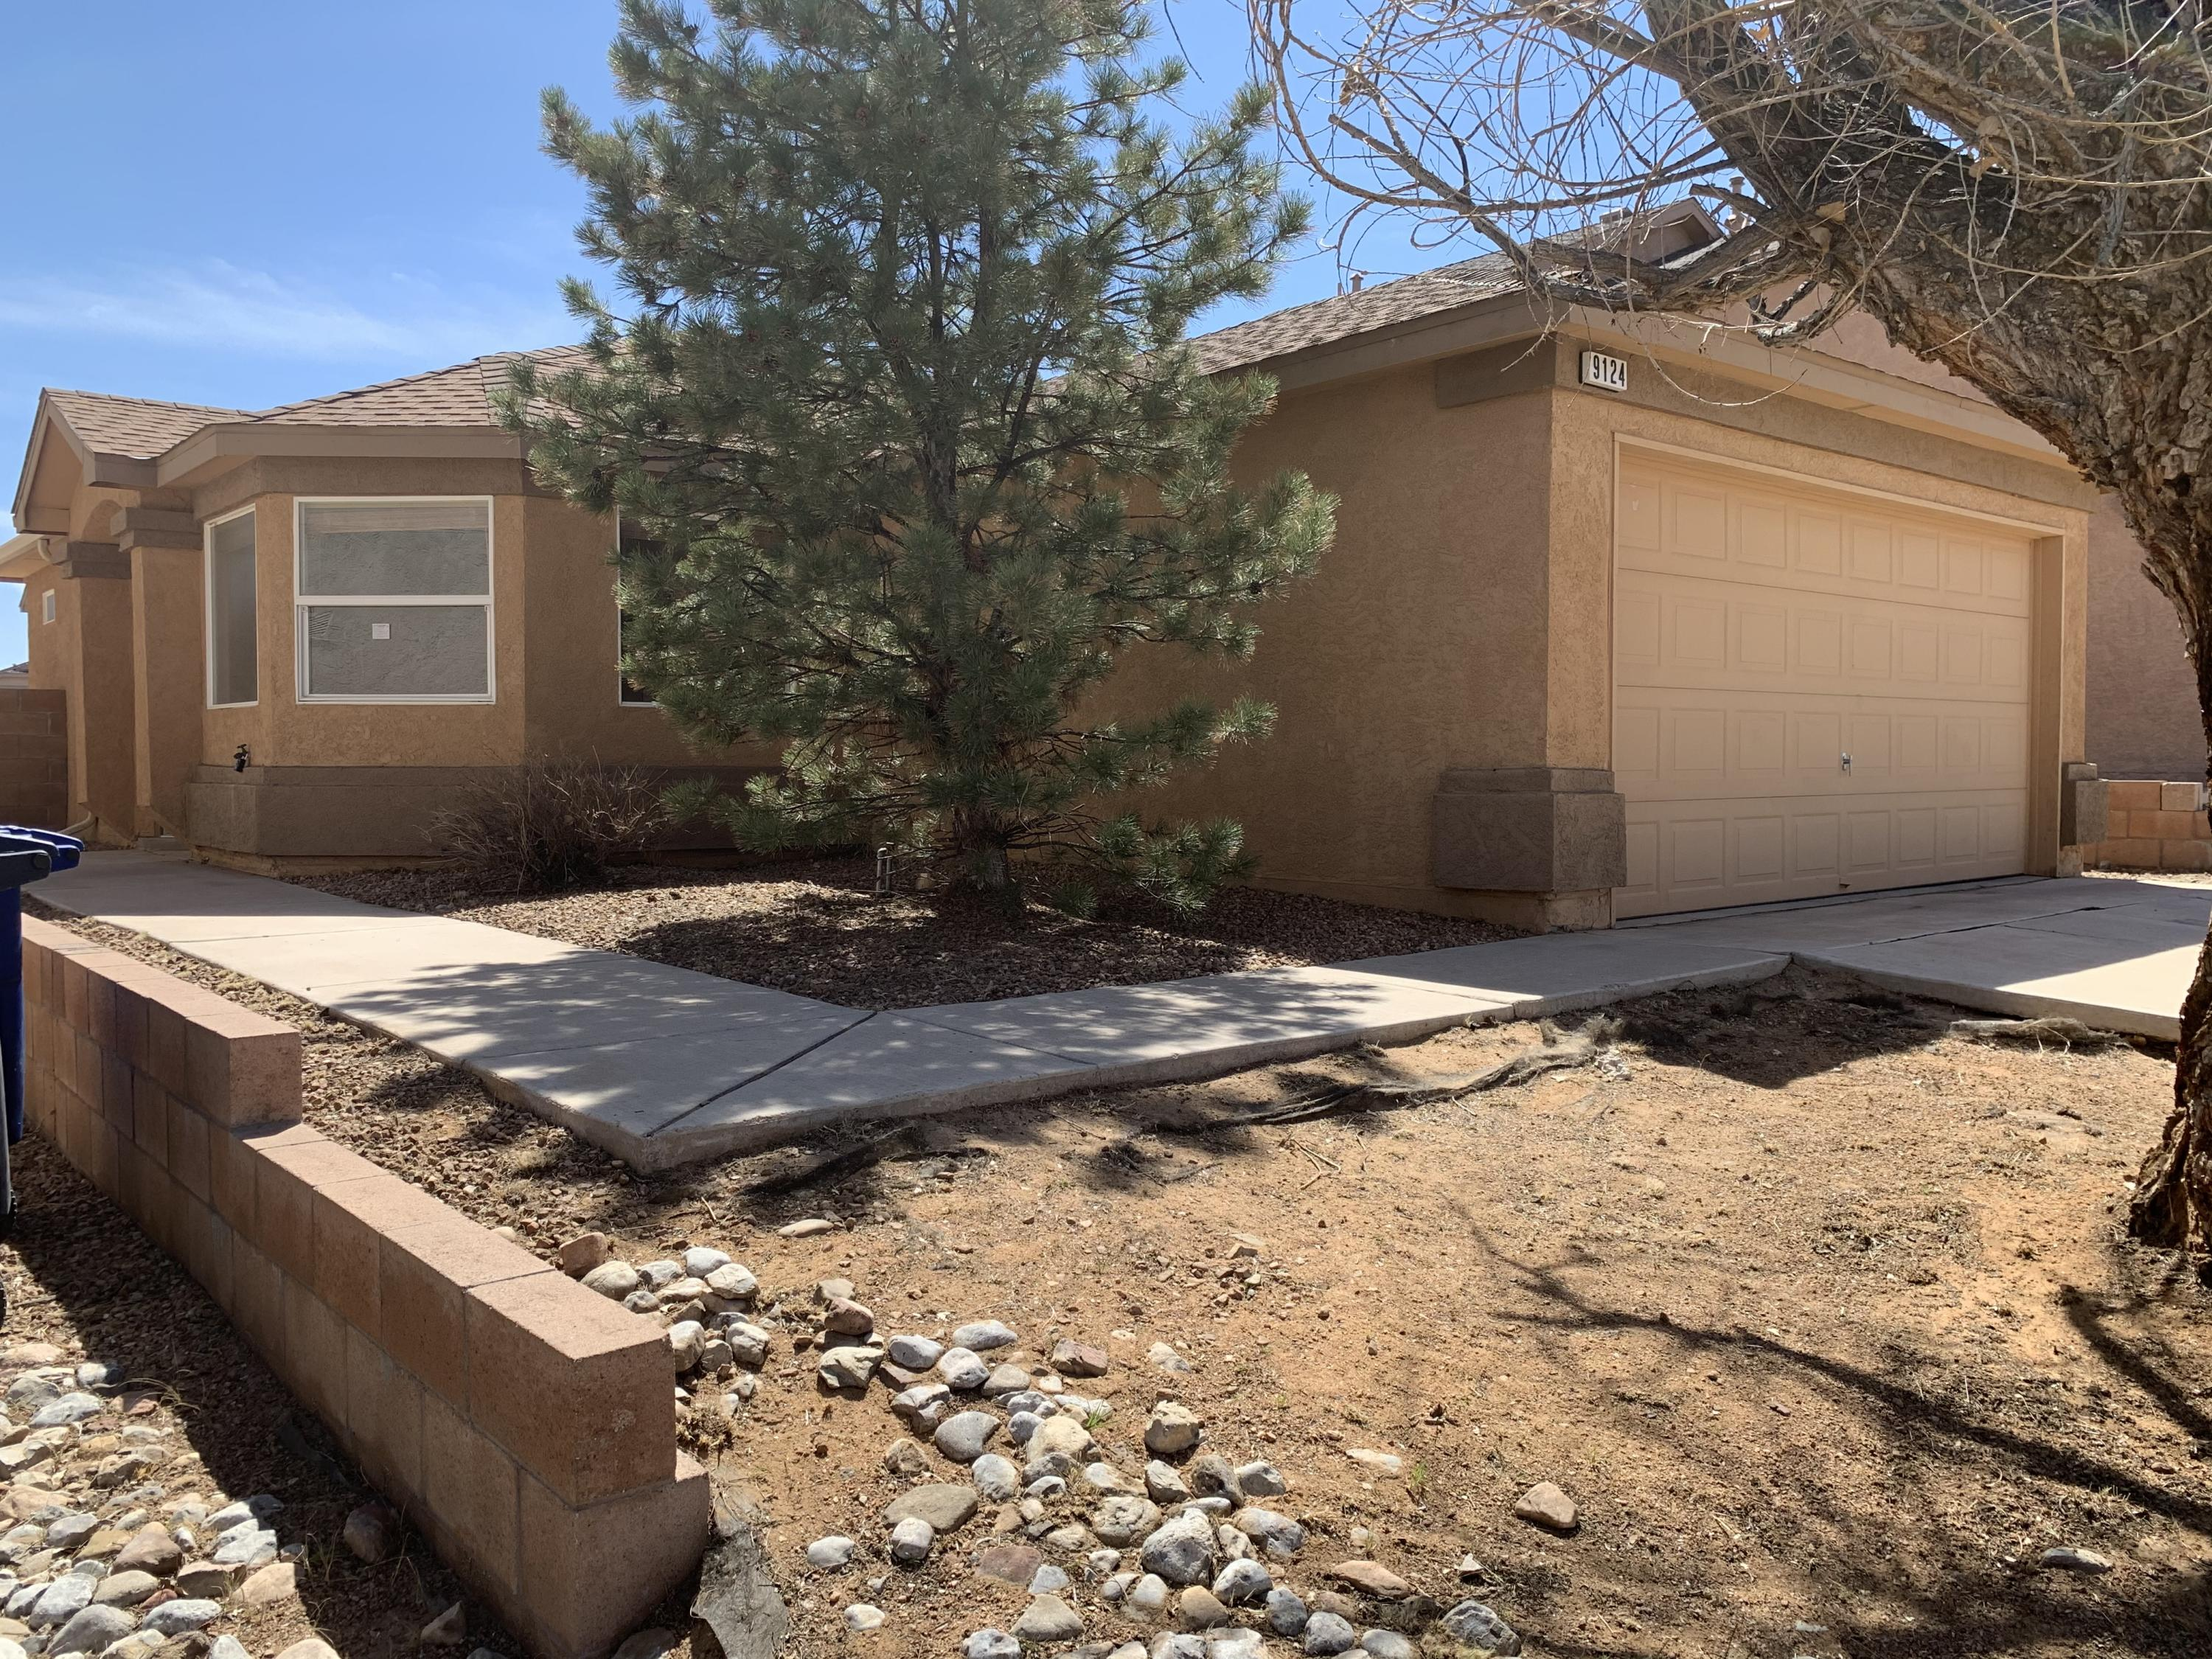 'Under Contract Taking Backup Offers',Here is a great opportunity for some sweat equity. This home has a great, open floor plan. This gem features 3 bedroom, 2 baths, and a 2 car garage. Located in a gated community, close to stores, schools and highways.